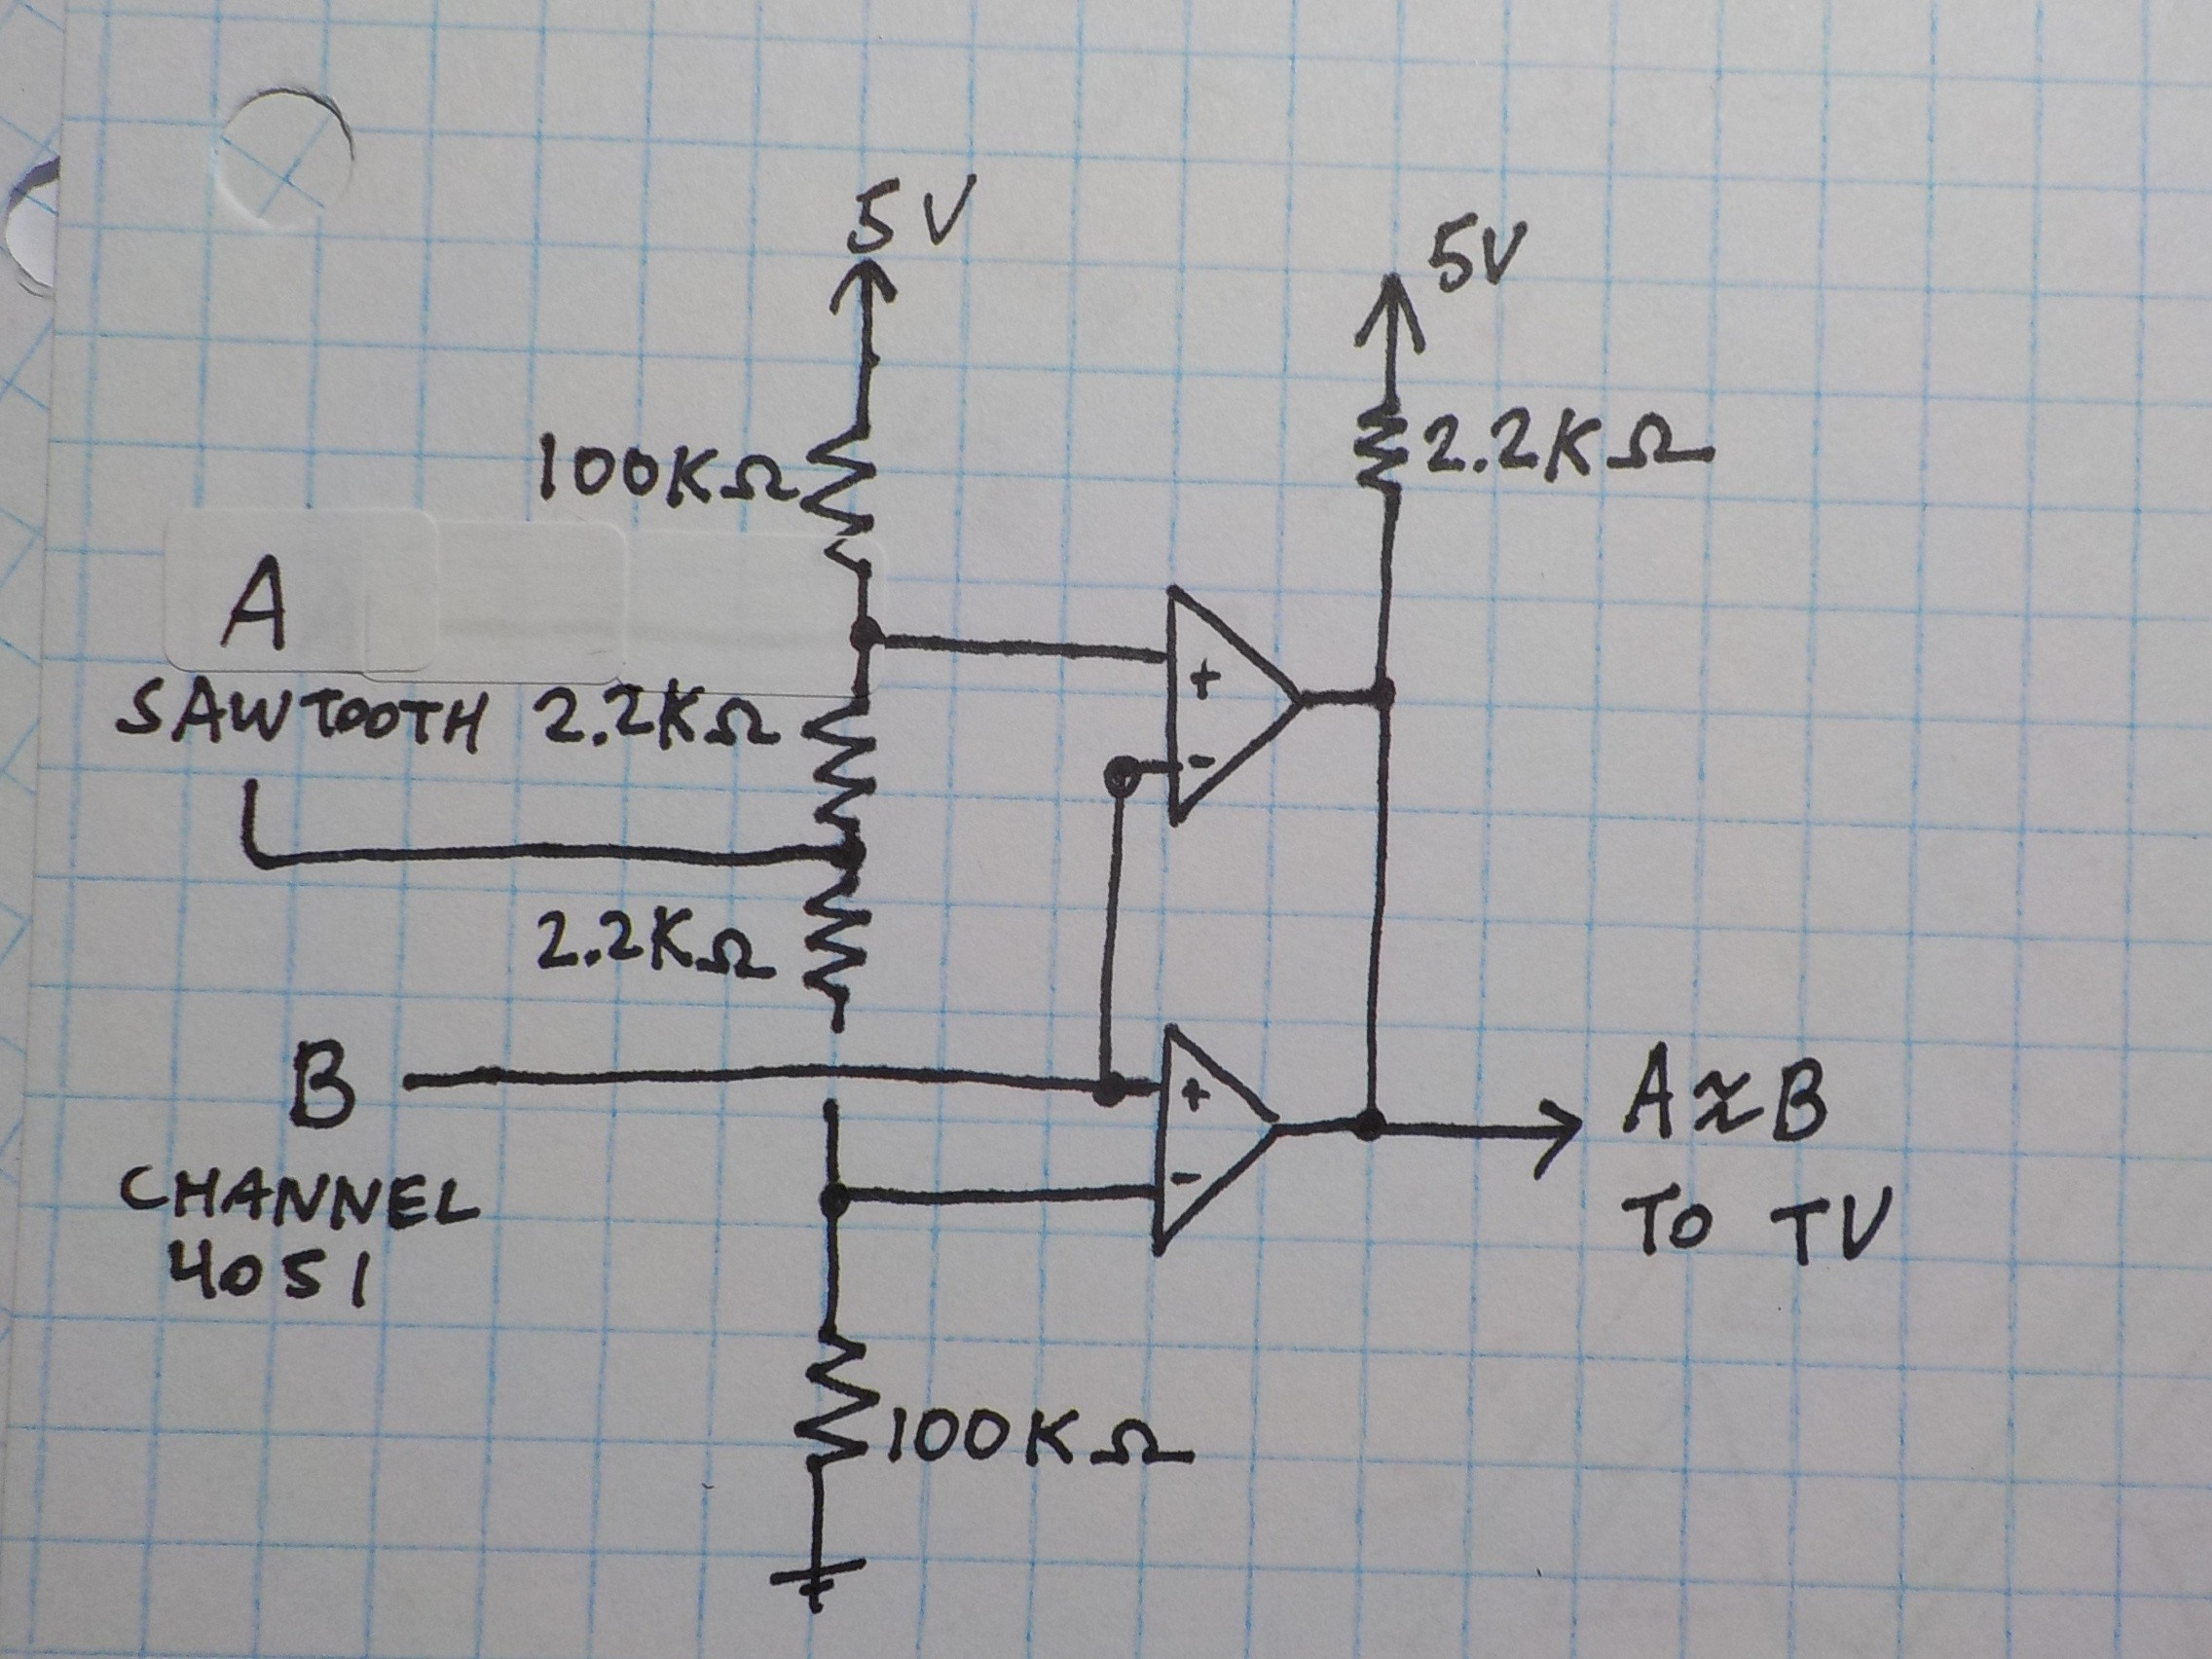 Project Zappotron Super Sequencer Logic Diagram For 2 Bit Demultiplexer Lm339 Has Open Collector Outputs Meaning 1 Is High Impedance This Means An And Gate Can Be Formed By Connecting The Directly Together